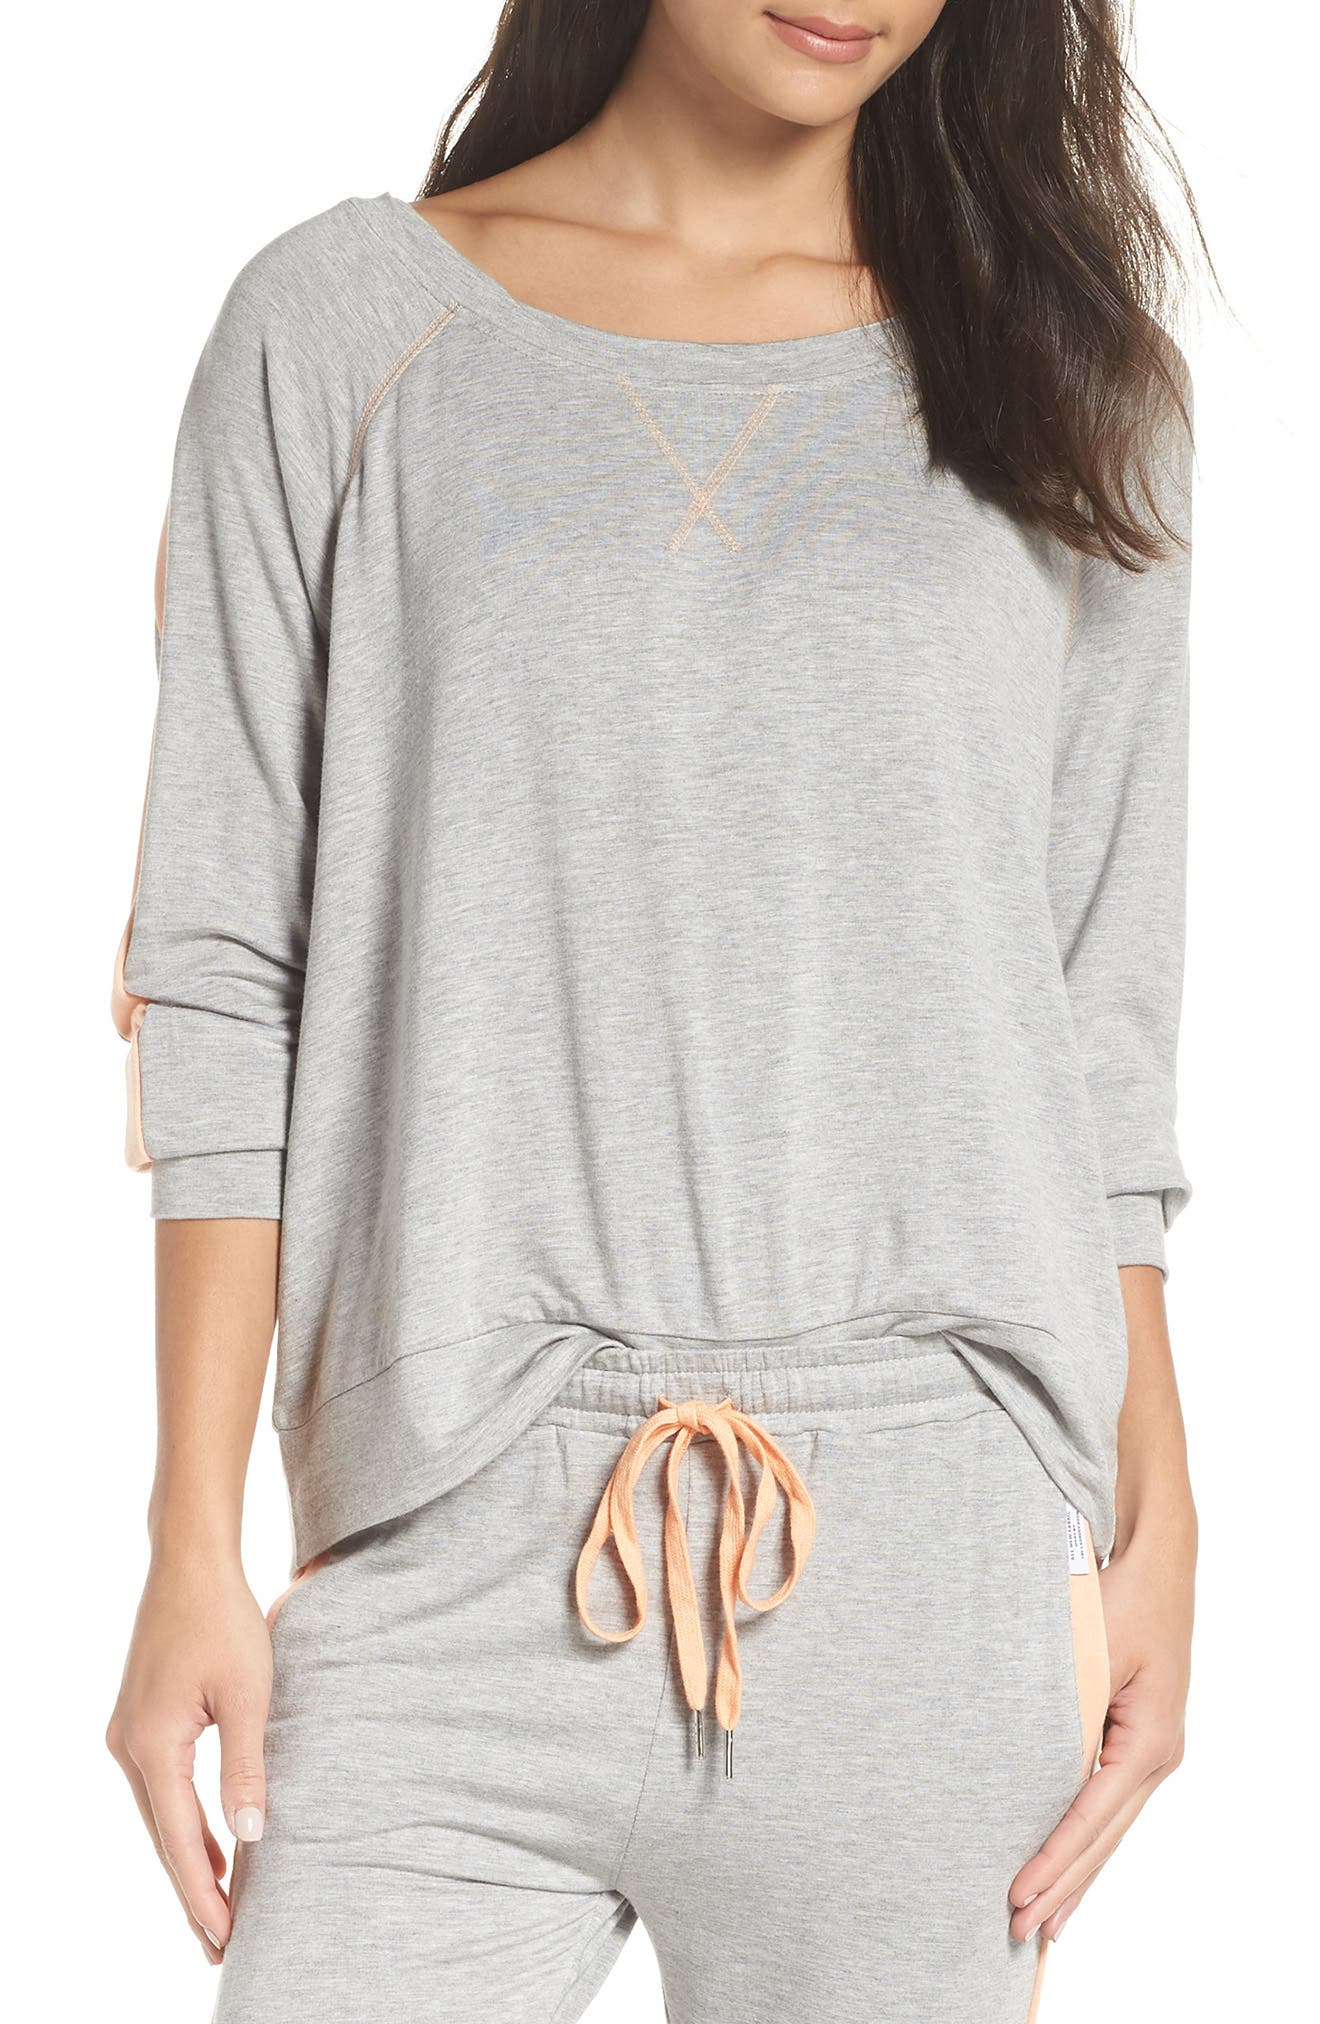 THE LAUNDRY ROOM Elevens Sweatshirt in Heather / Peach